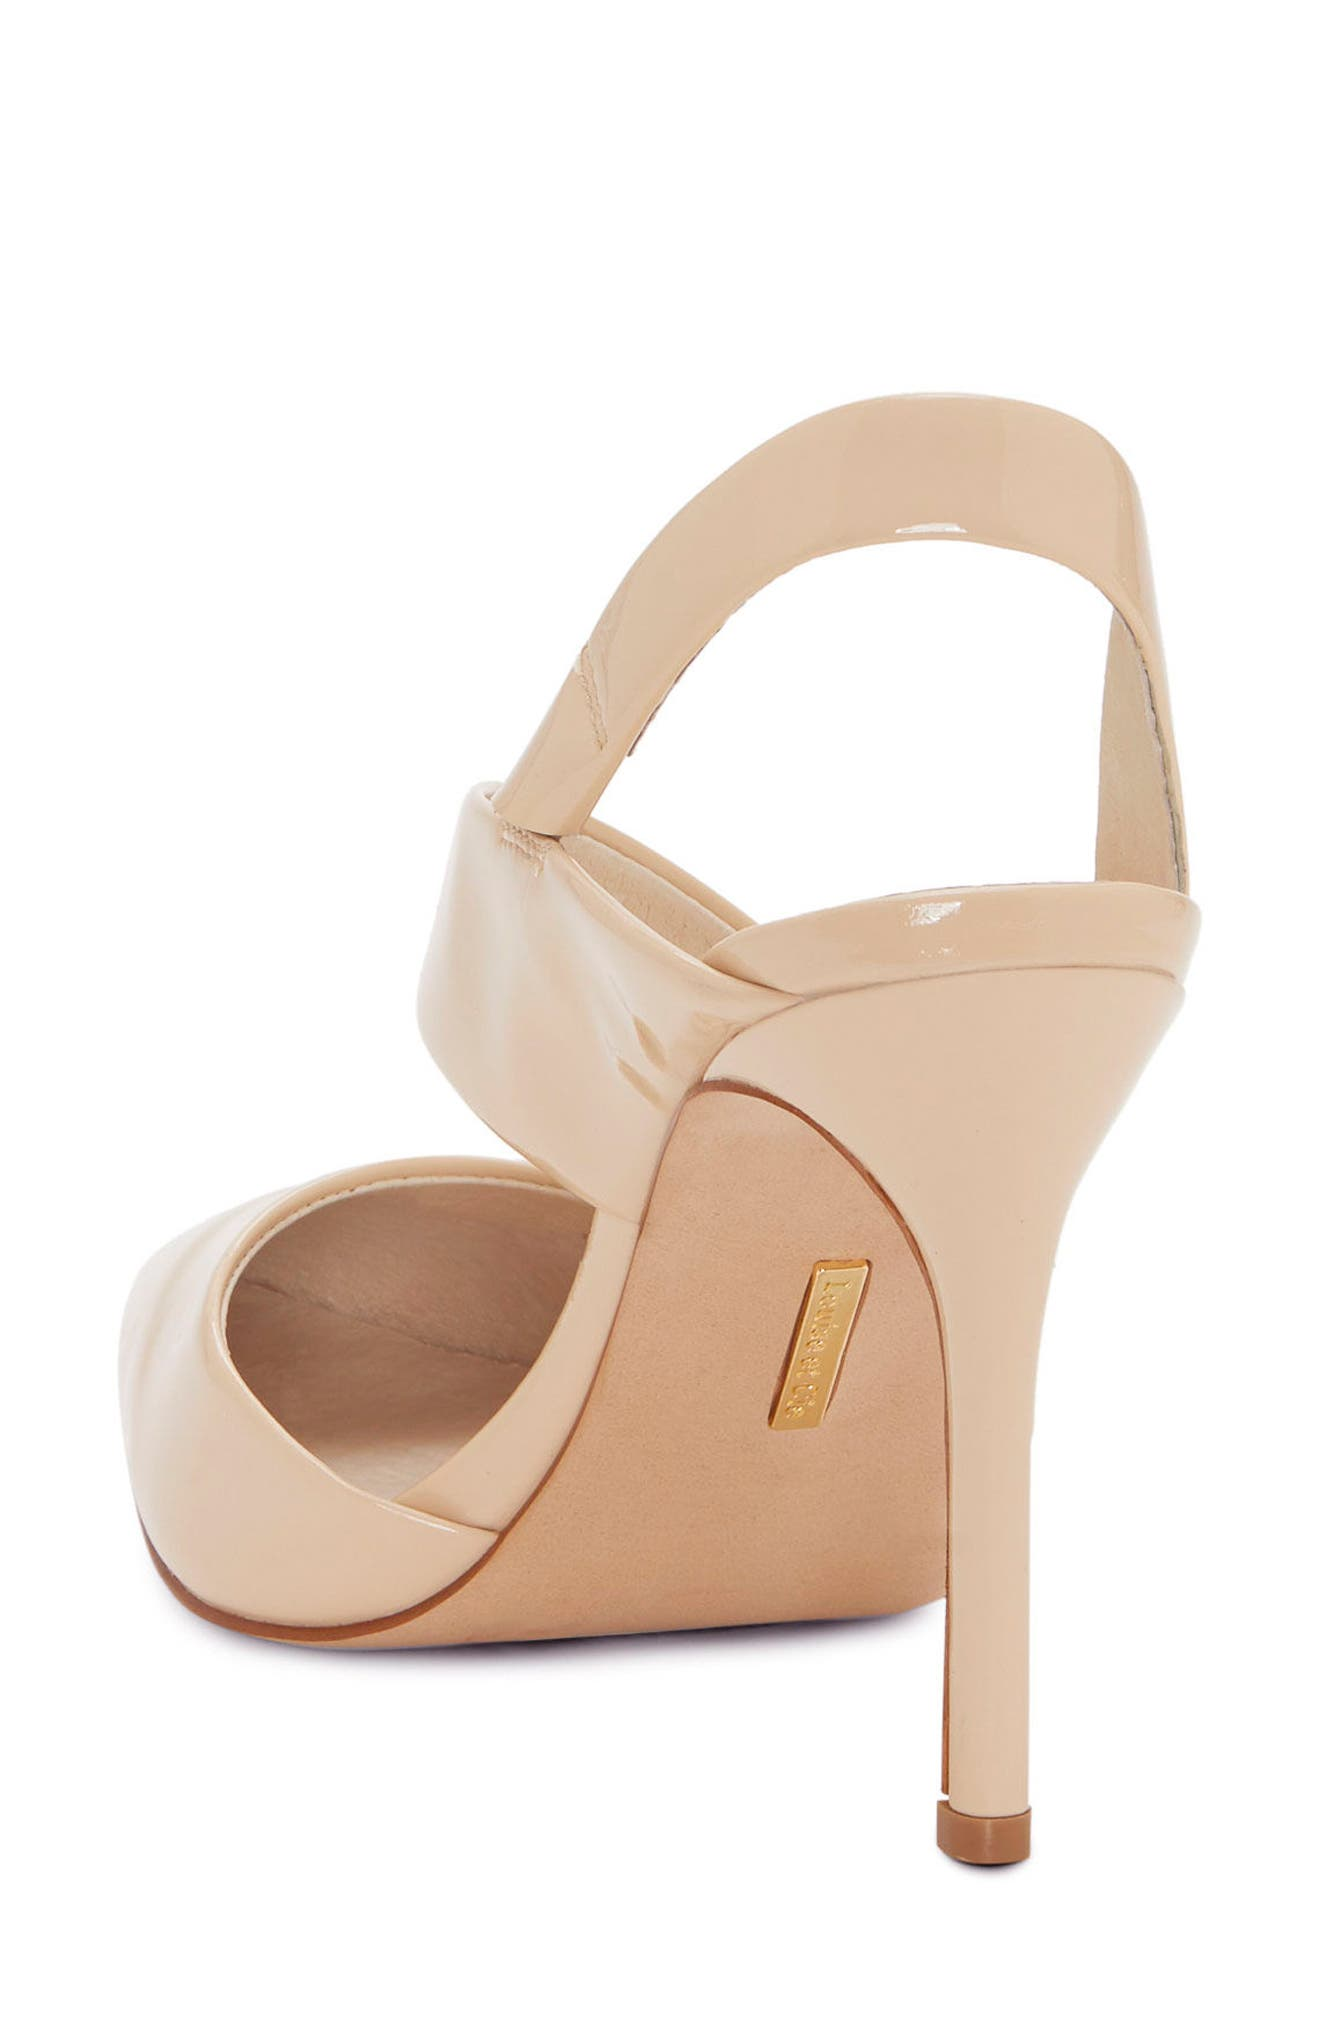 Jerry Pointy Toe Slingback Pump,                             Alternate thumbnail 2, color,                             Odessa Patent